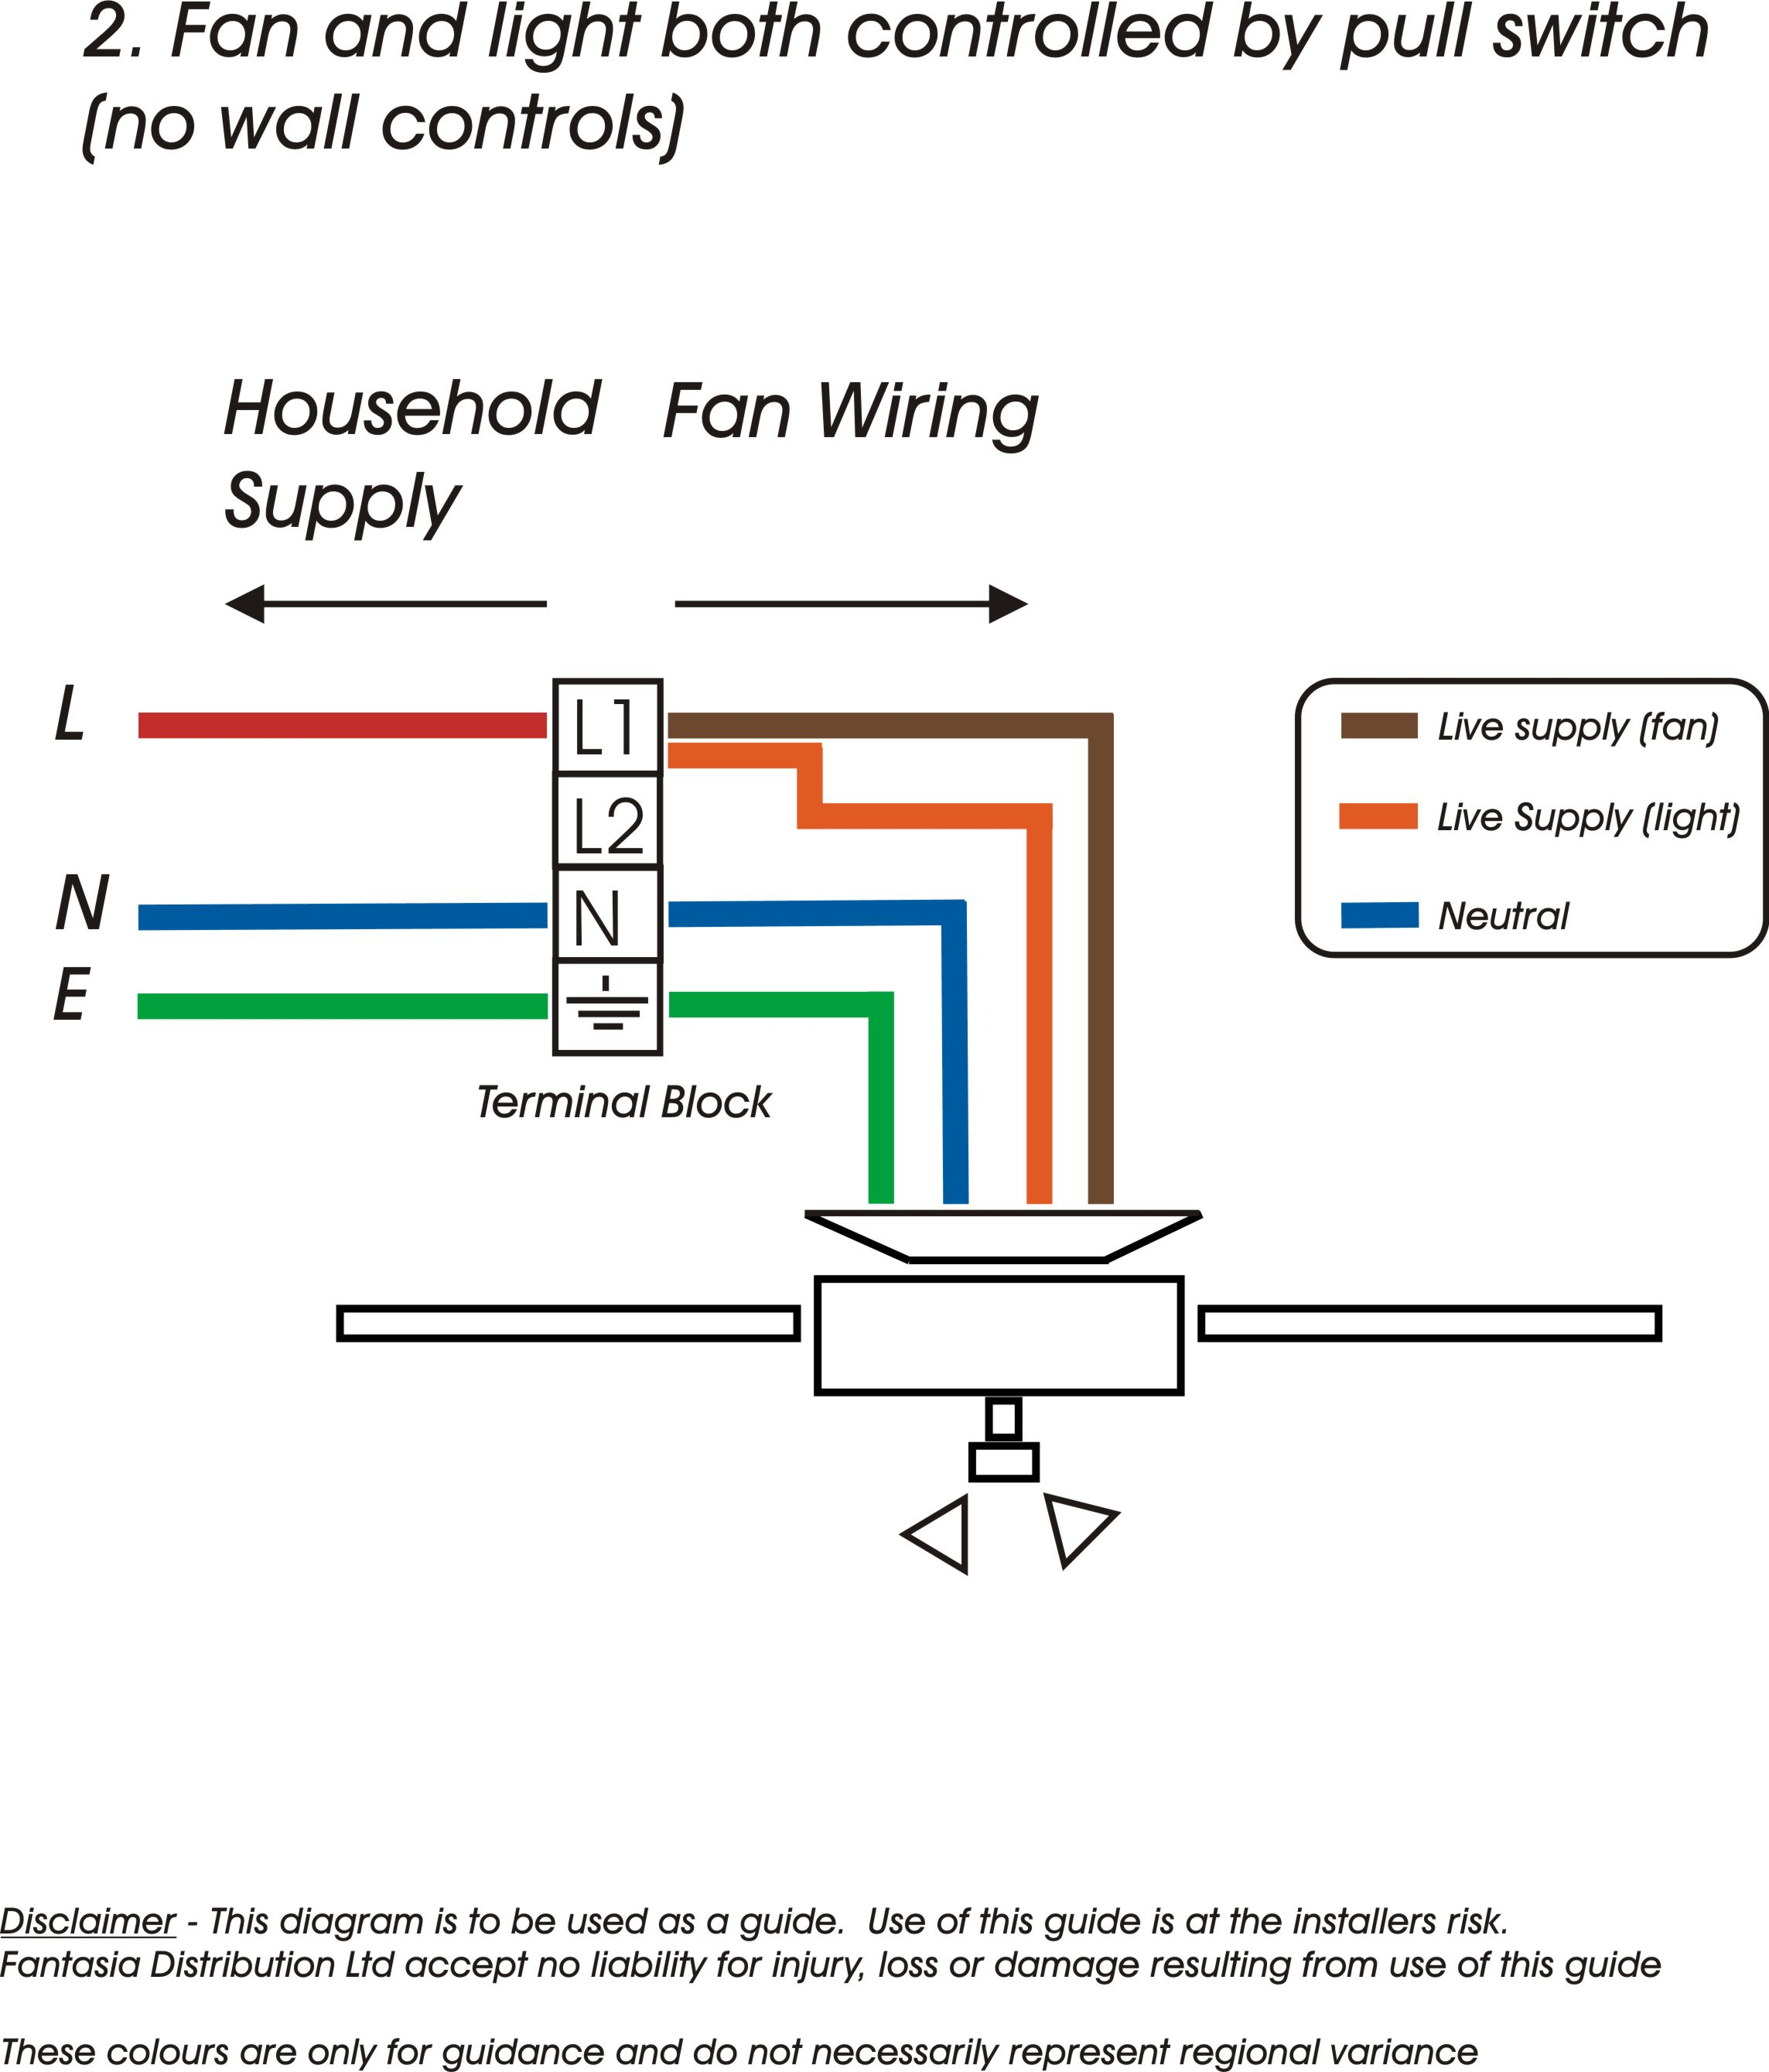 Fantasia Fans | Fantasia Ceiling Fans Wiring Information - Wiring Diagram For Ceiling Fan With Lights